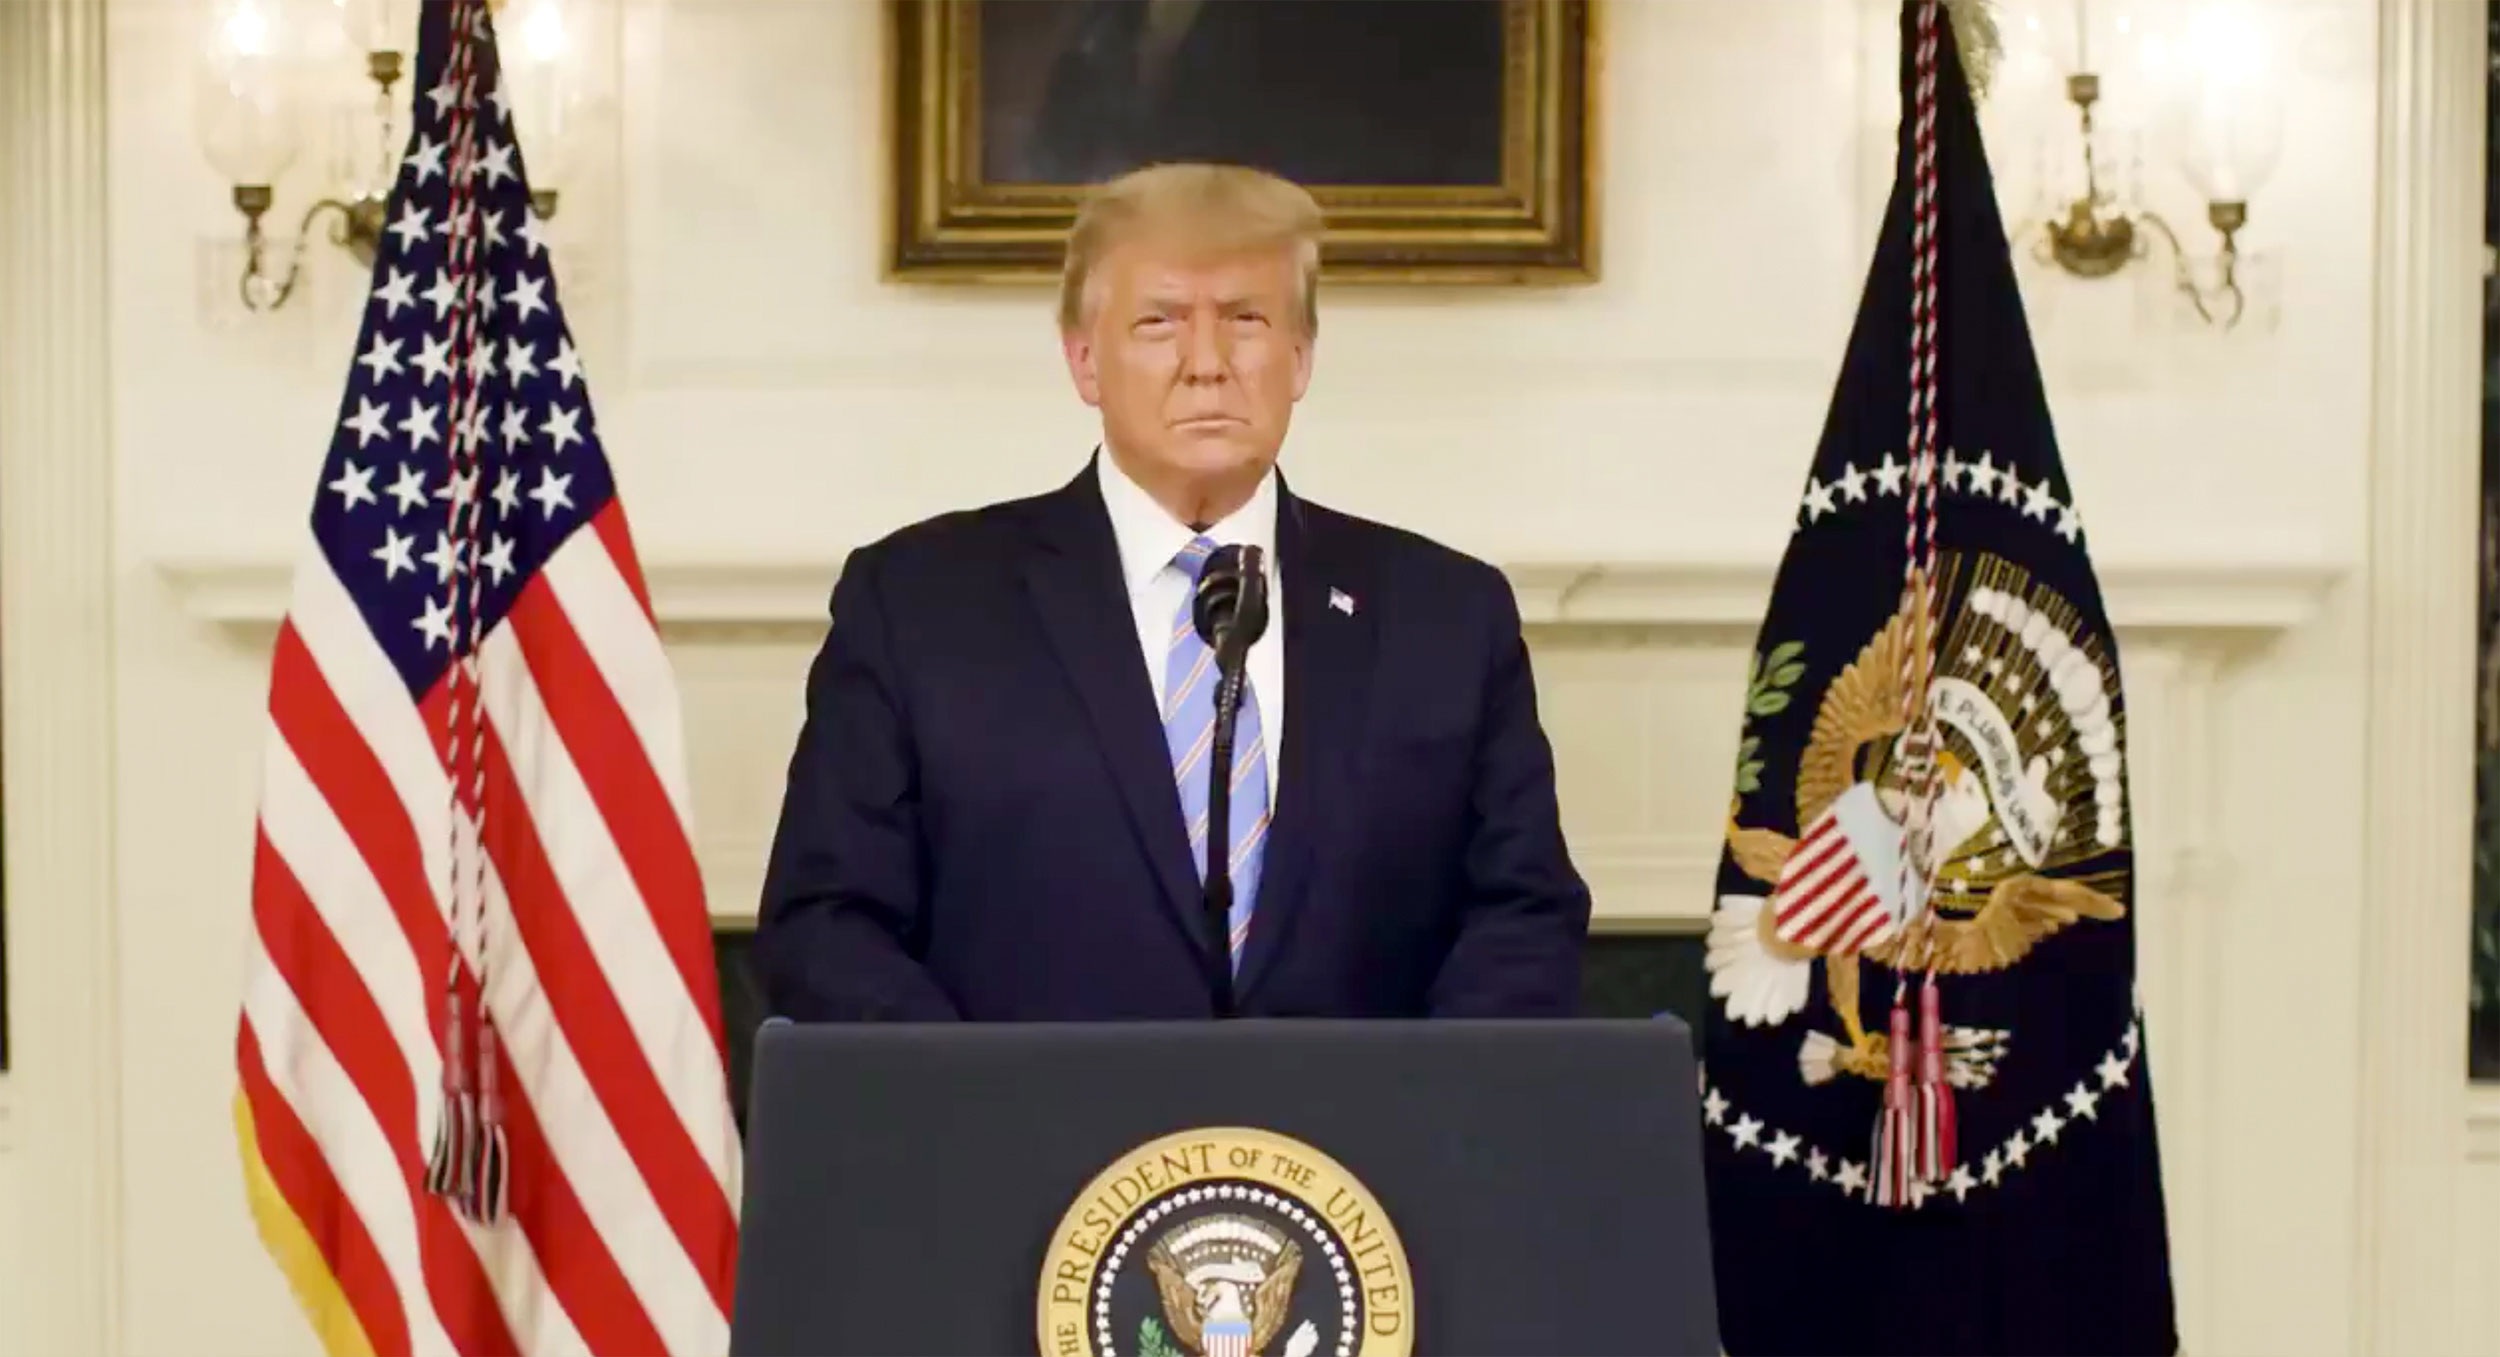 President Donald Trump addresses the violence at the US Capitol in a recorded statement released via his Twitter account on January 7.